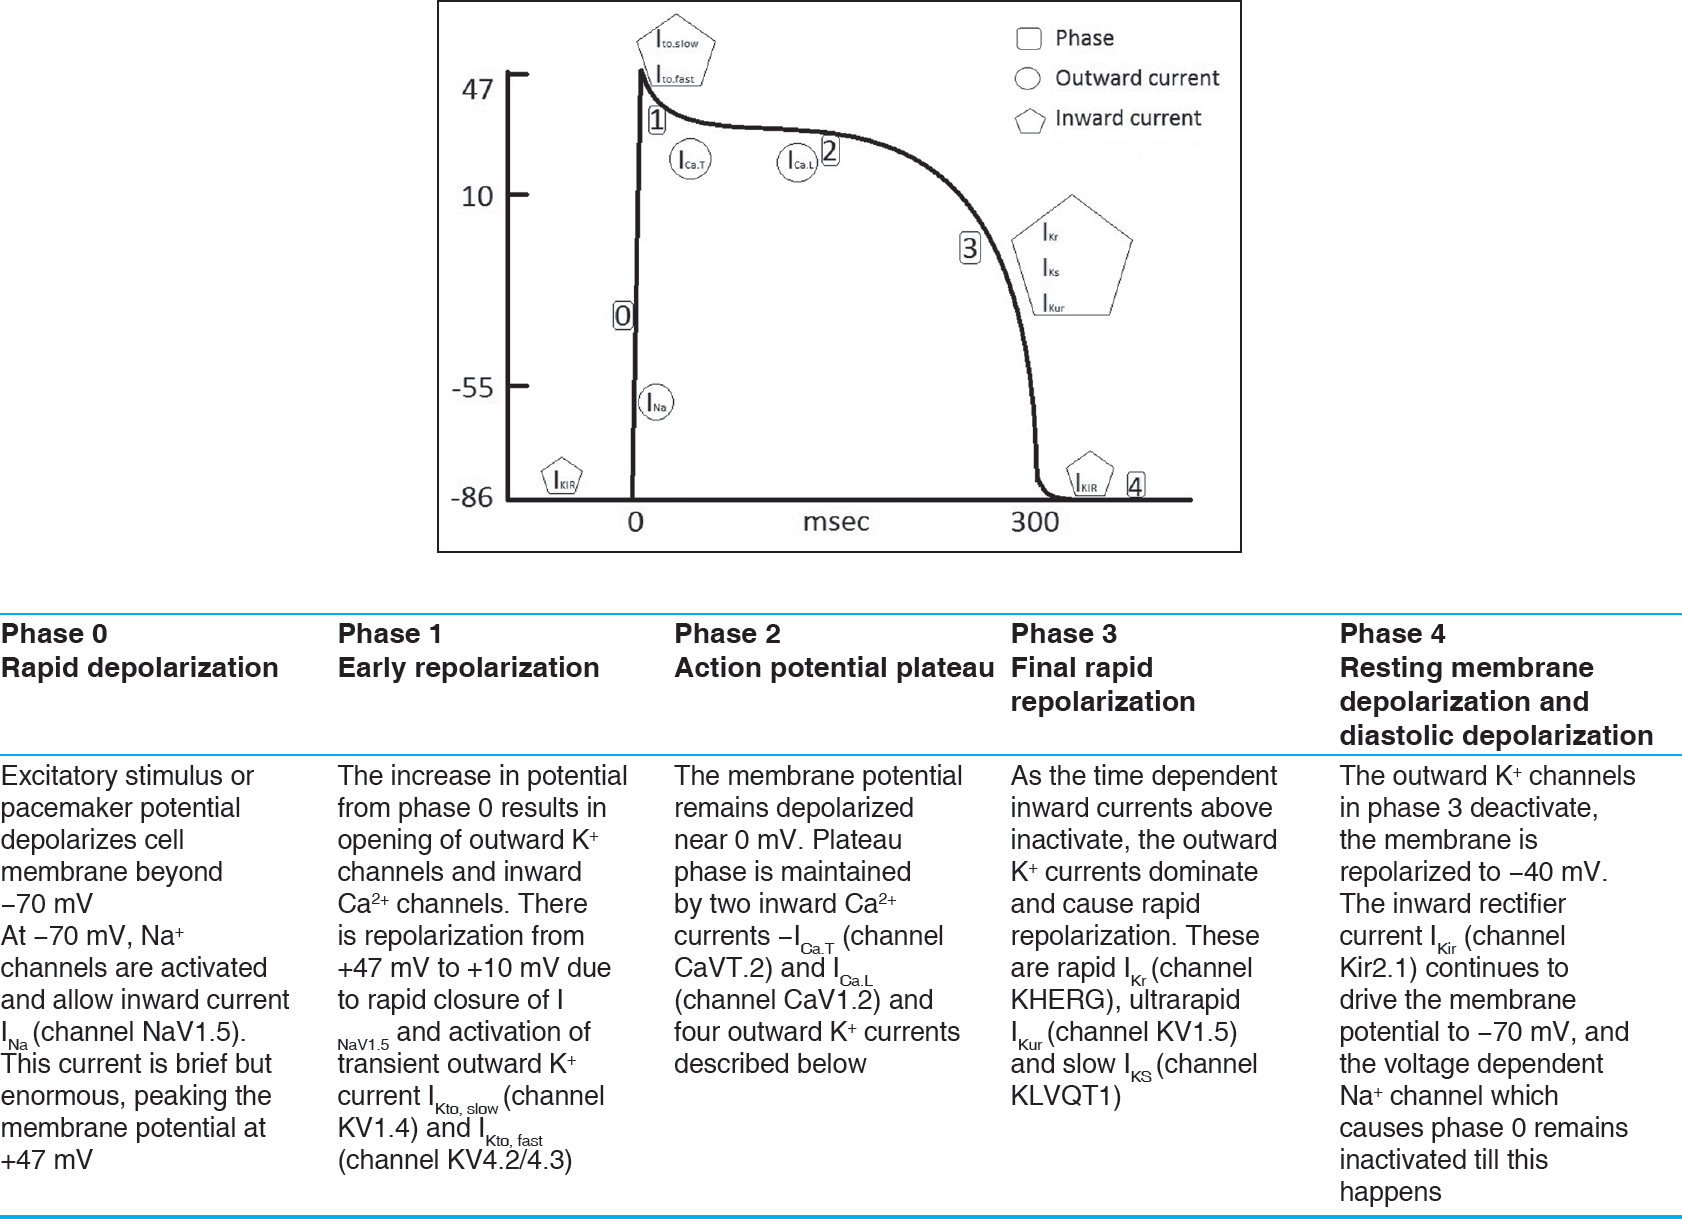 Figure 1: Phases of the ventricular action potential with description of major events[1]